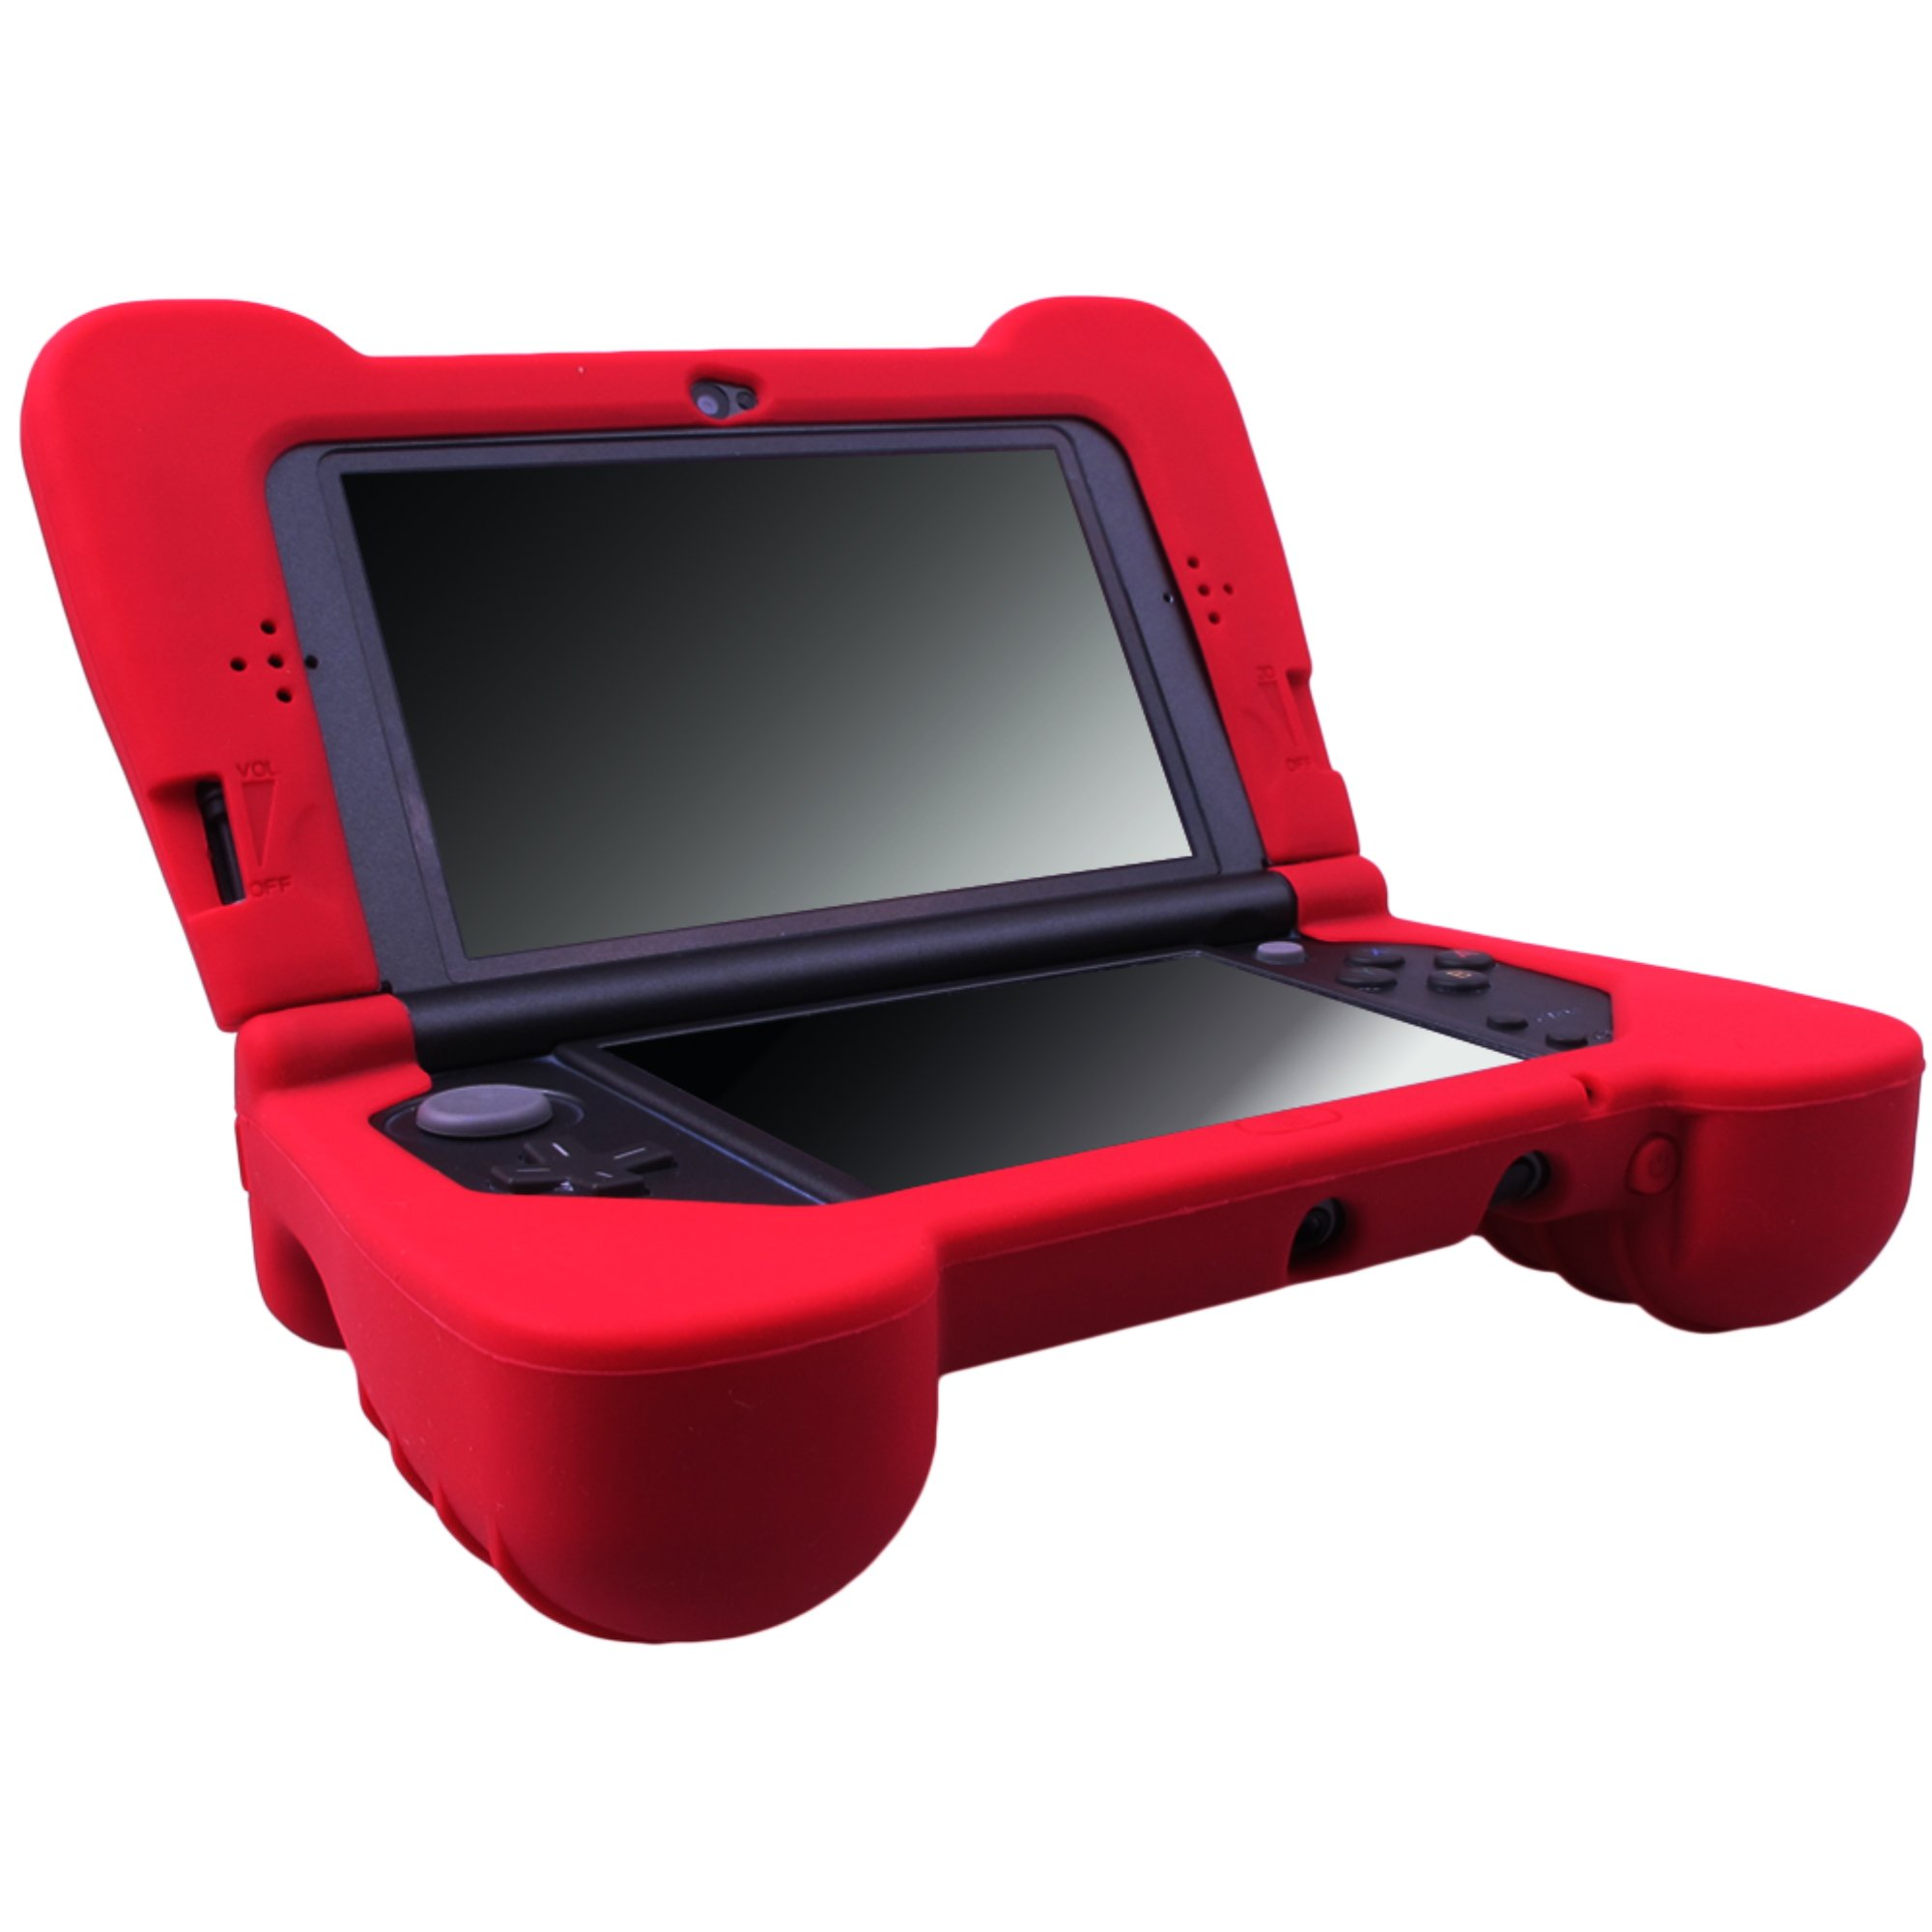 MXRC Silicone rubber cover skin case anti-slip Hand Grip Customize for Nintendo NEW 3DS XL x 1 Red